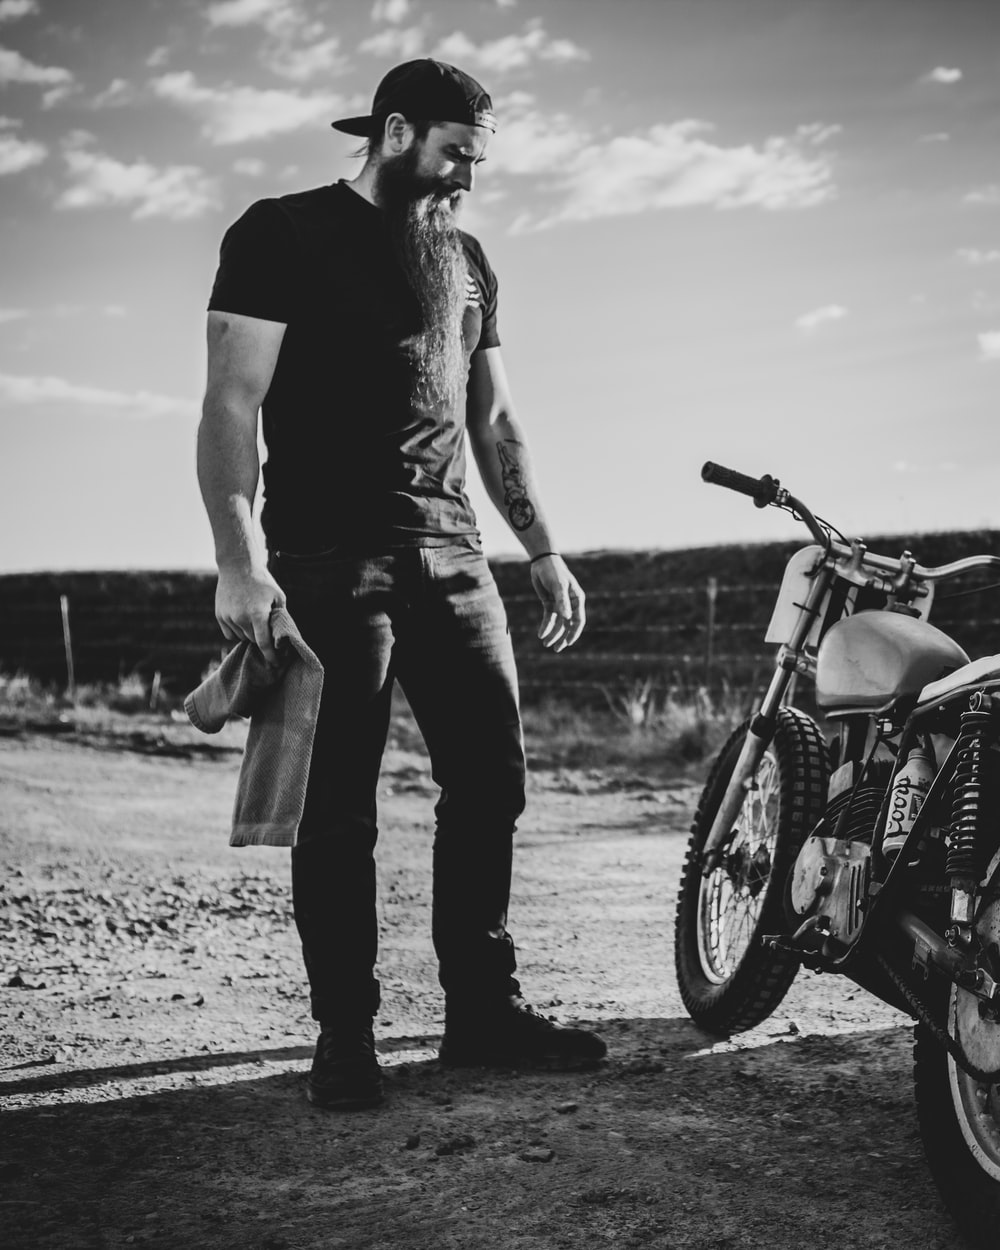 man in black t-shirt and pants standing beside motorcycle